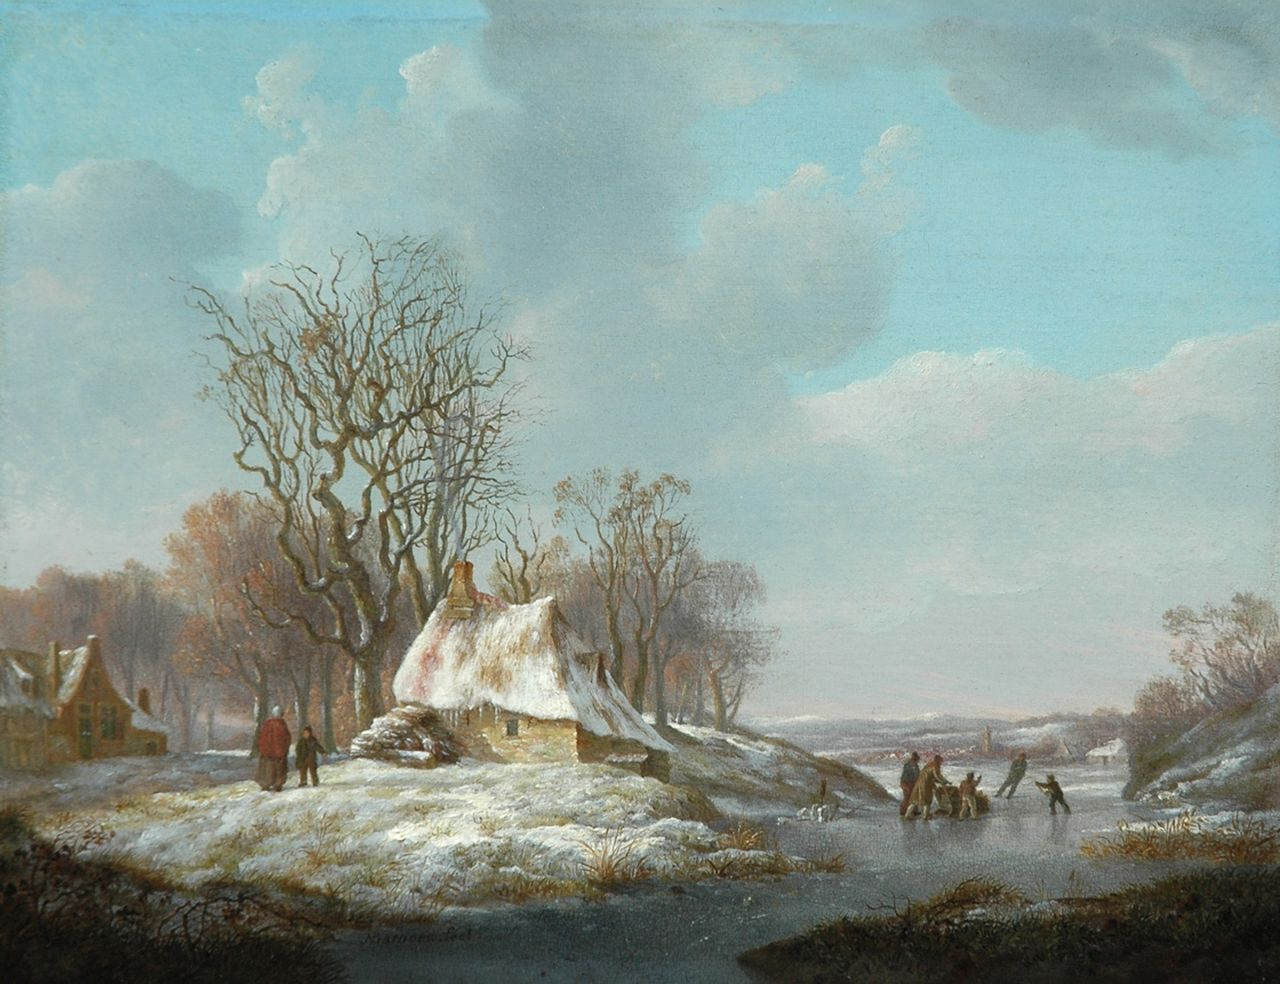 Nicolaas Barnouw | A winterlandscape with farmer's cottages and skaters, oil on panel, 21.5 x 27.8 cm, signed l.l.c.